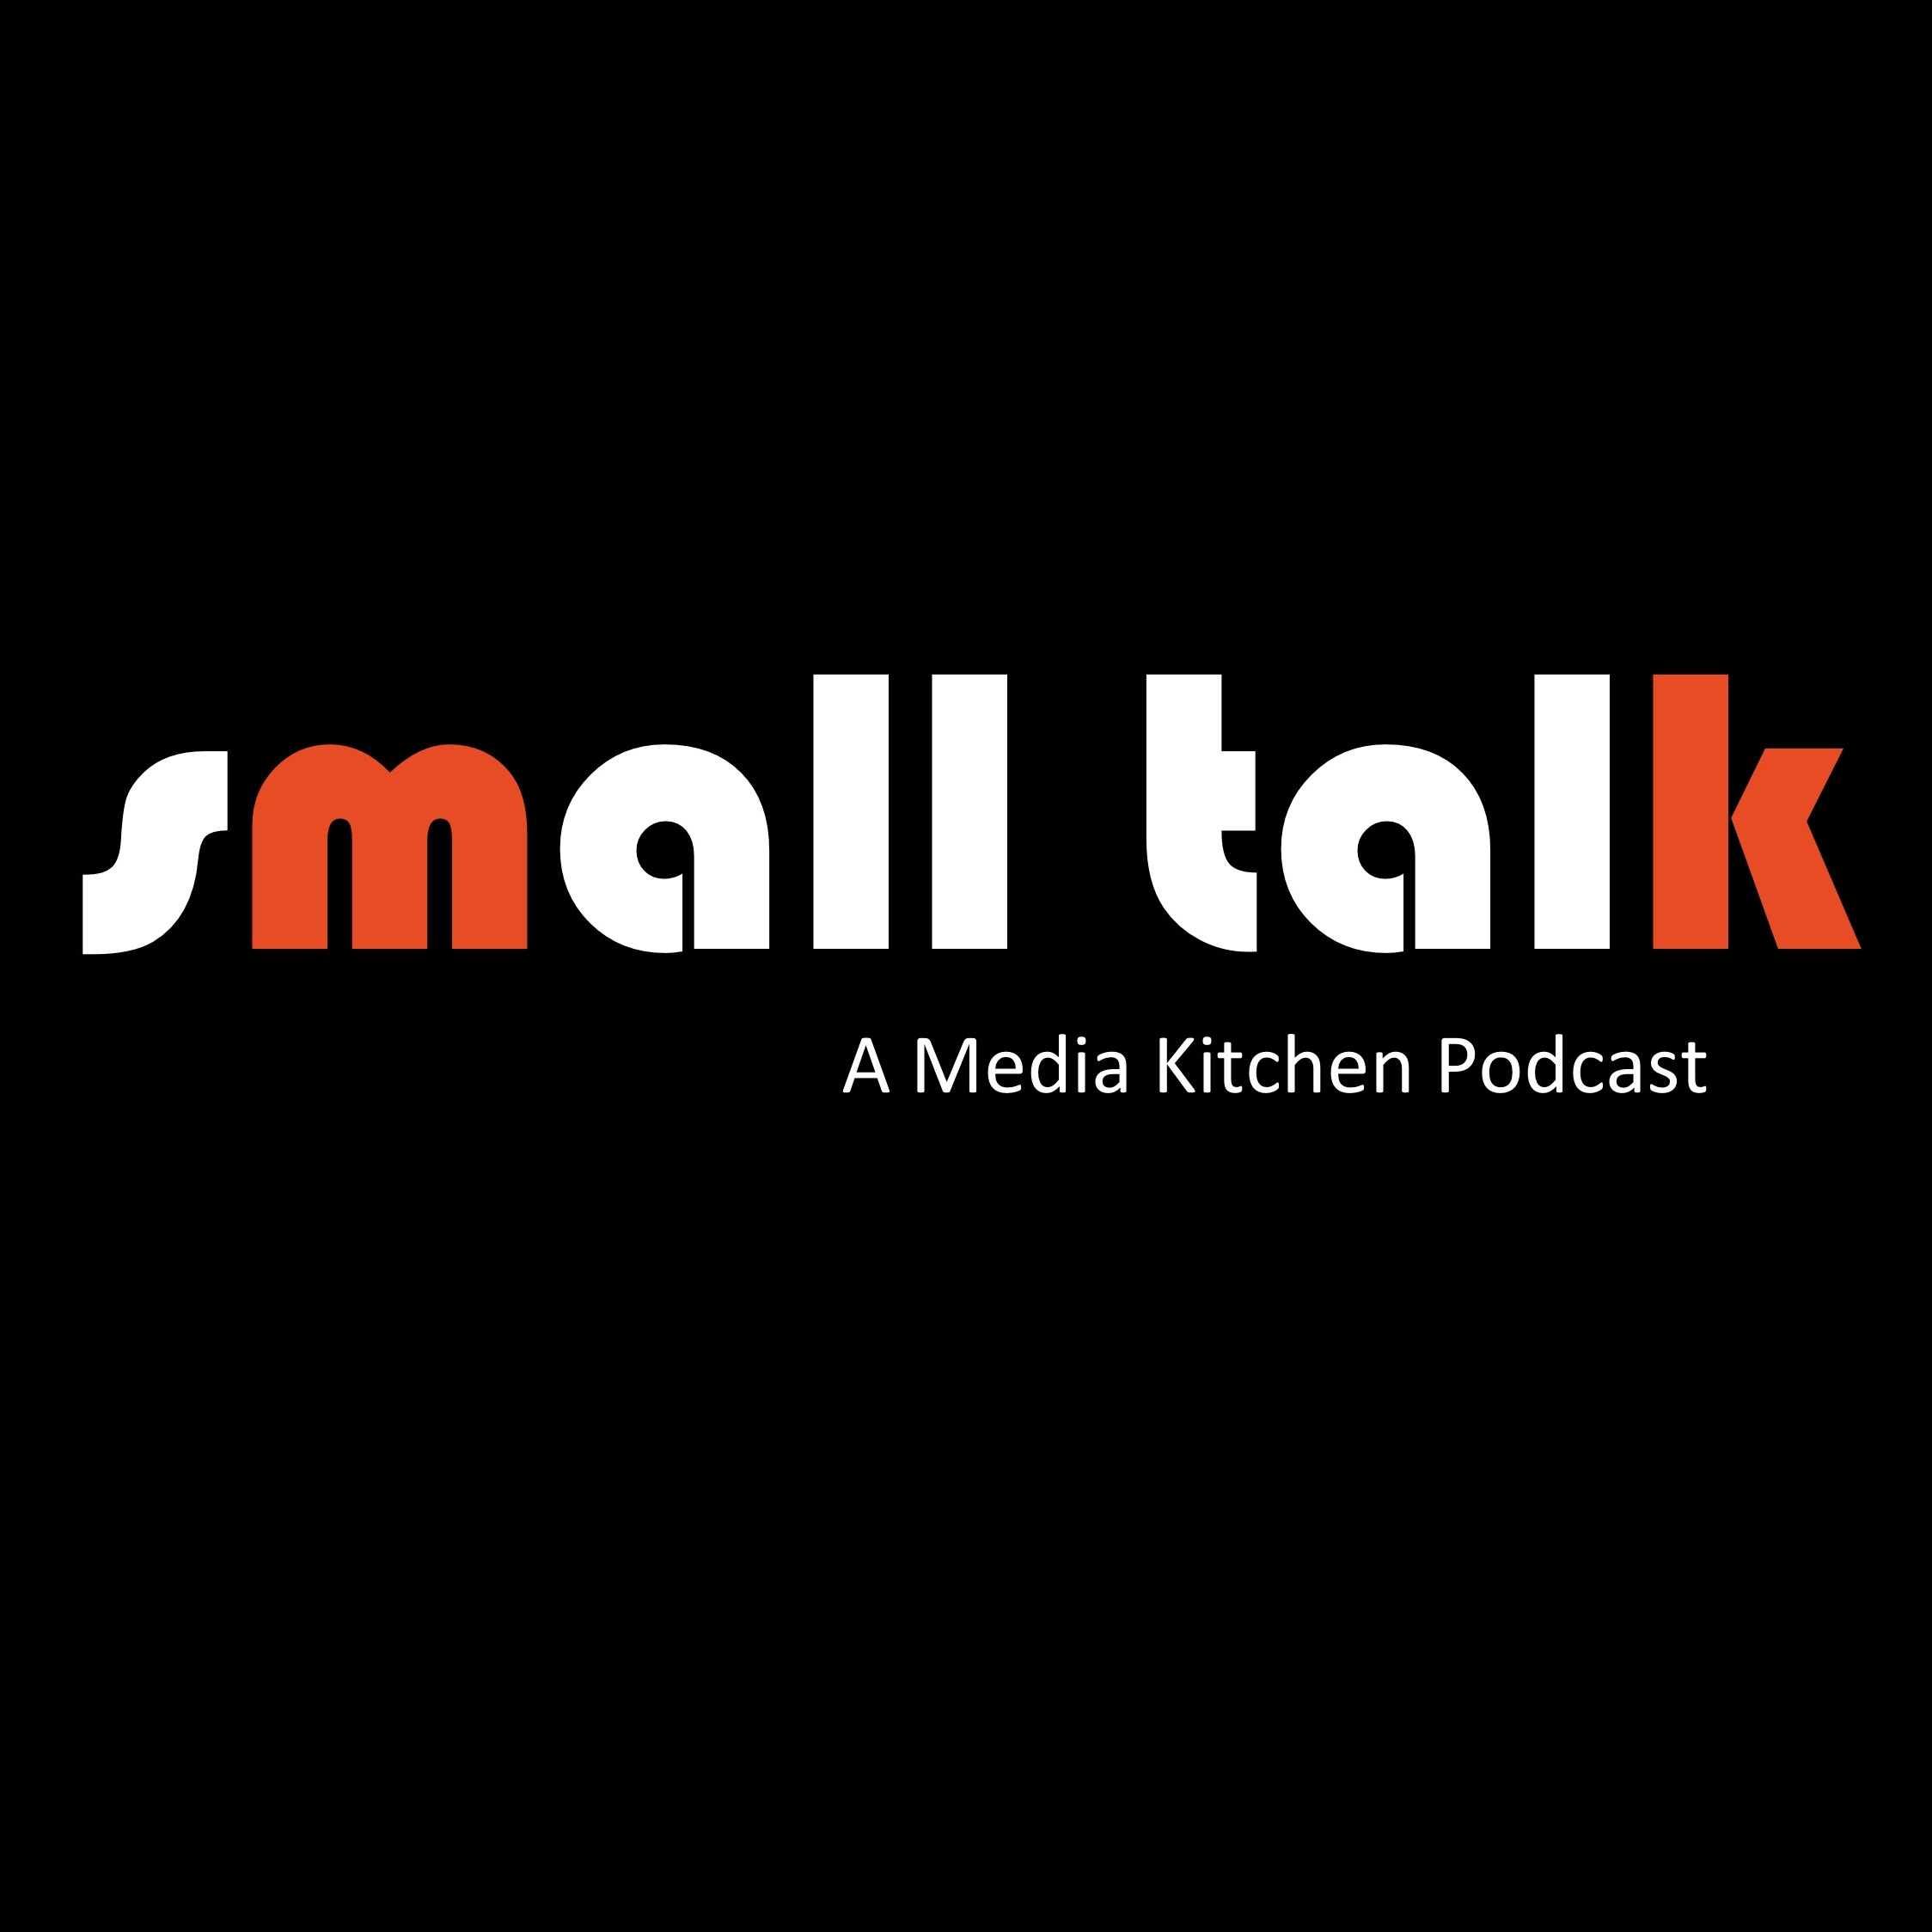 Small Talk Podcast